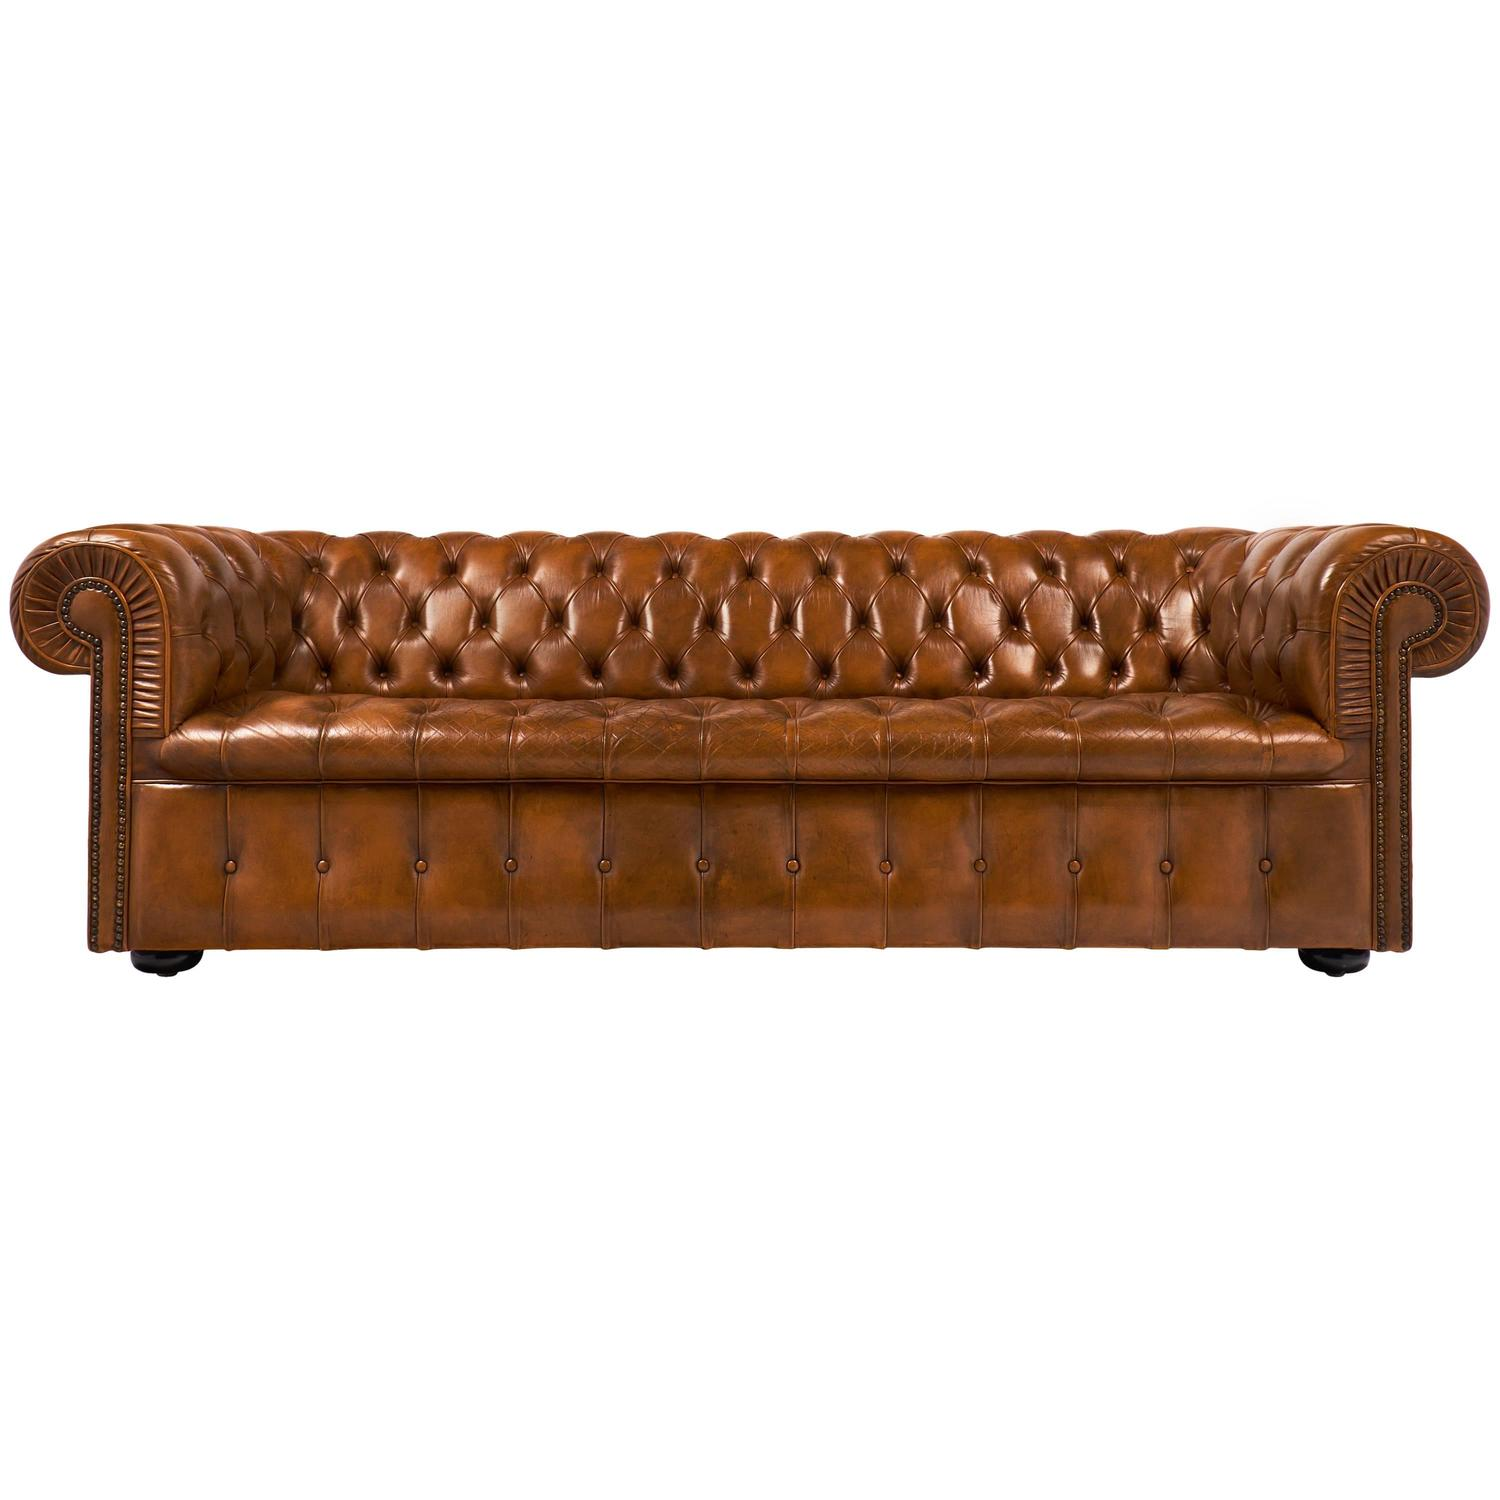 vintage english cognac leather chesterfield sofa at 1stdibs. Black Bedroom Furniture Sets. Home Design Ideas